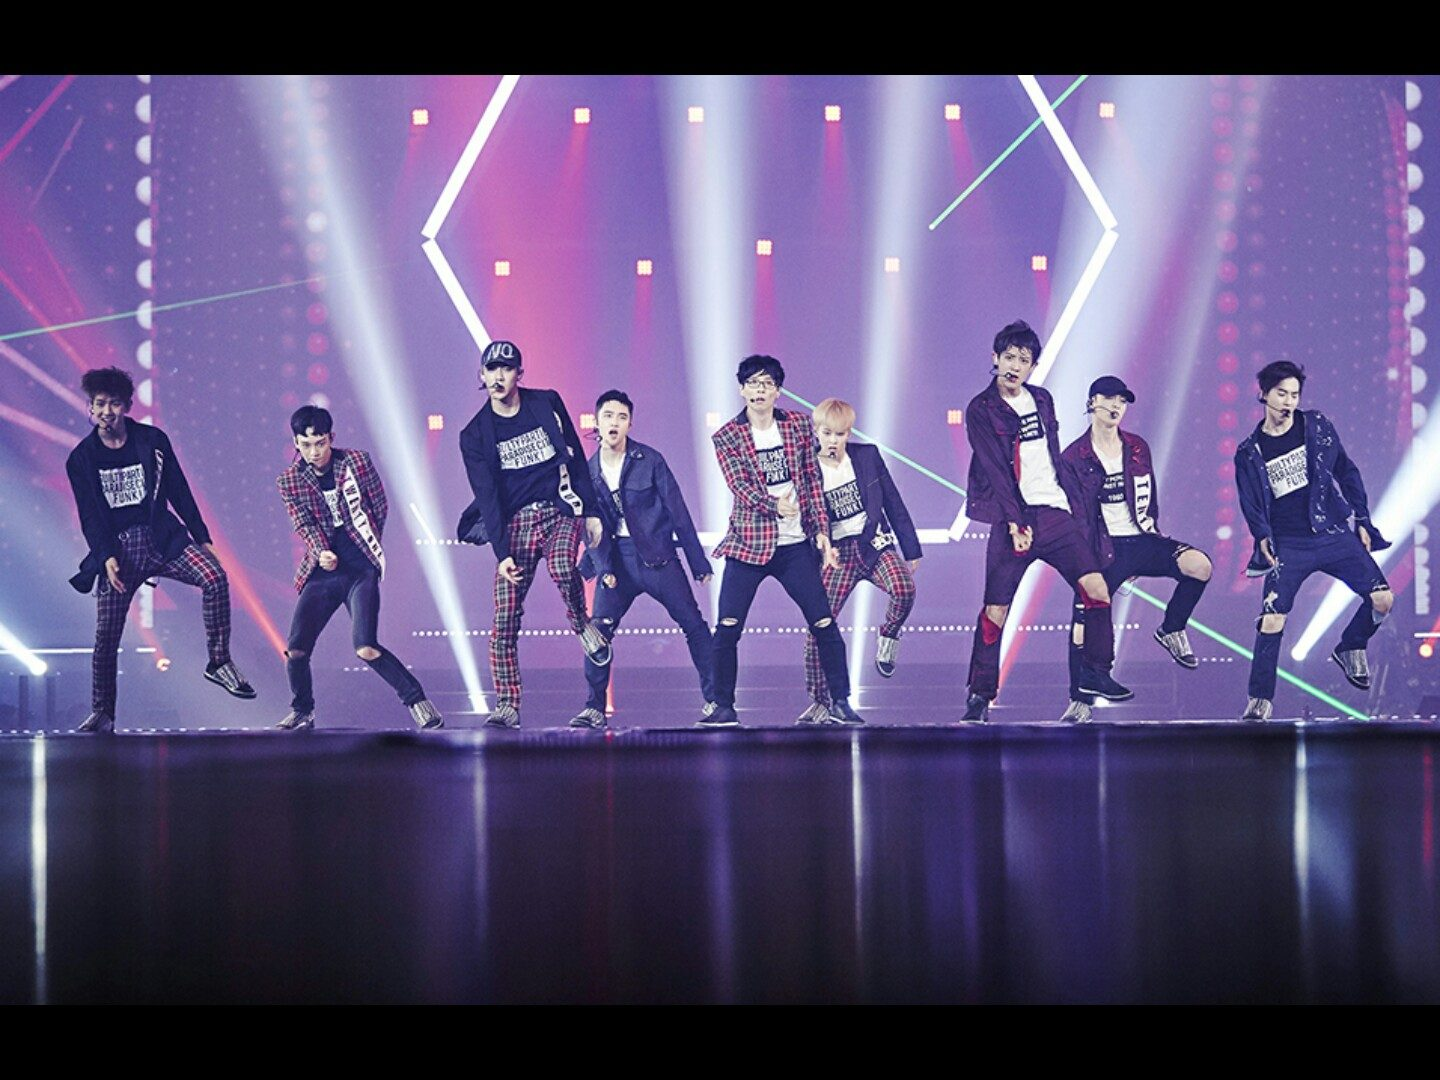 Yoo In Suk Update: Yoo Jae Suk And EXO Release SM STATION Collaboration Track